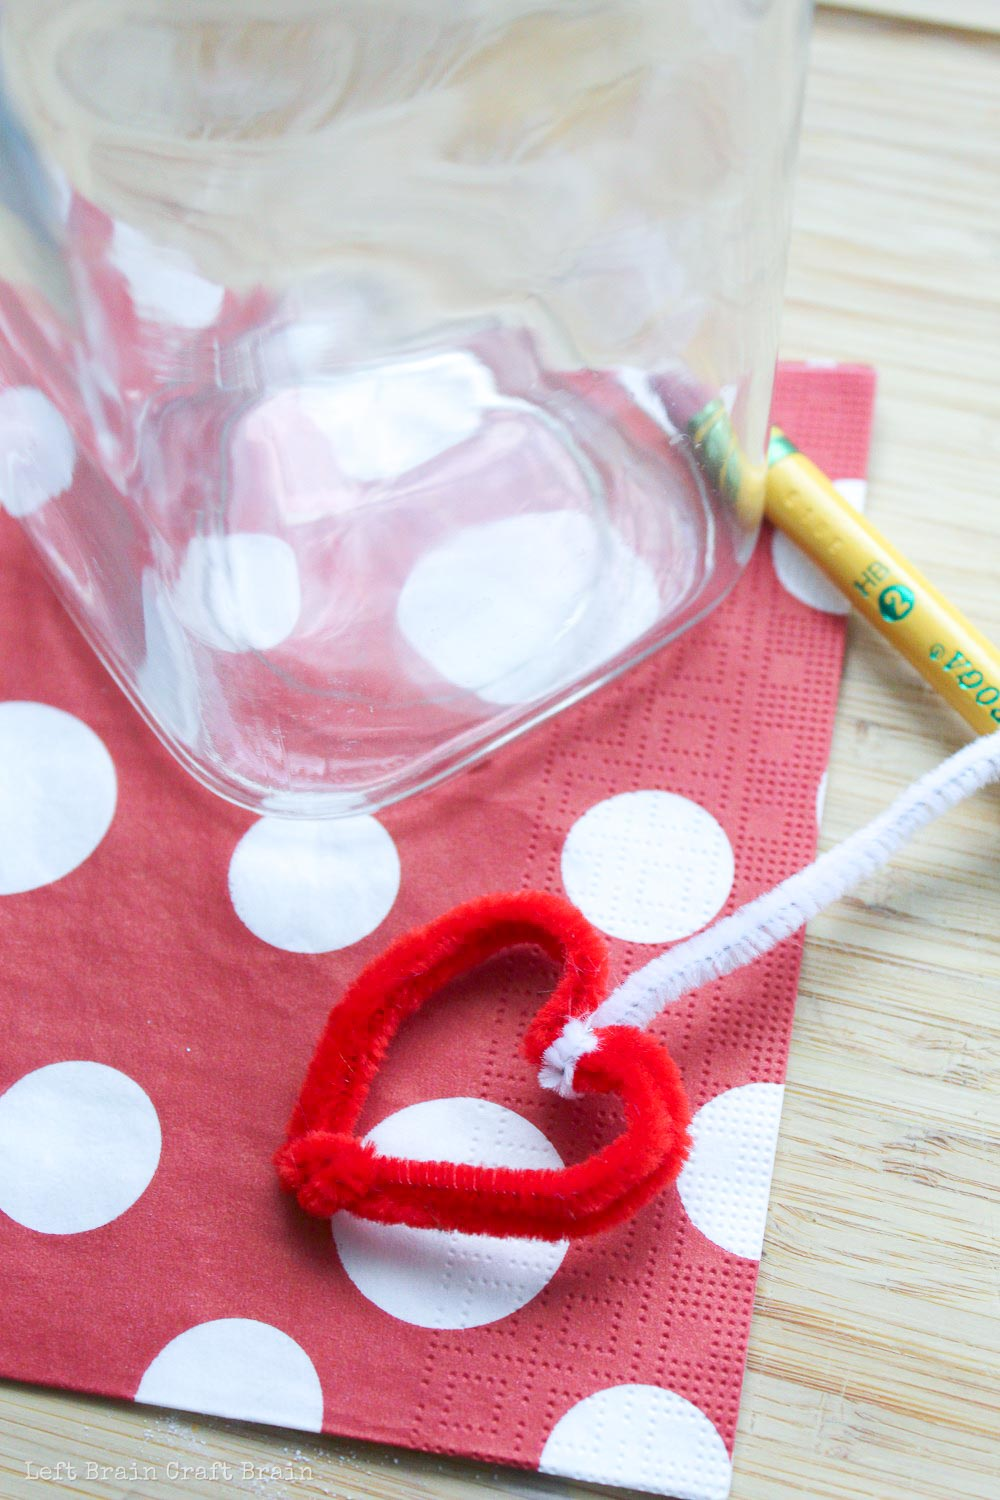 Attach the pipe cleaner heart to a pencil